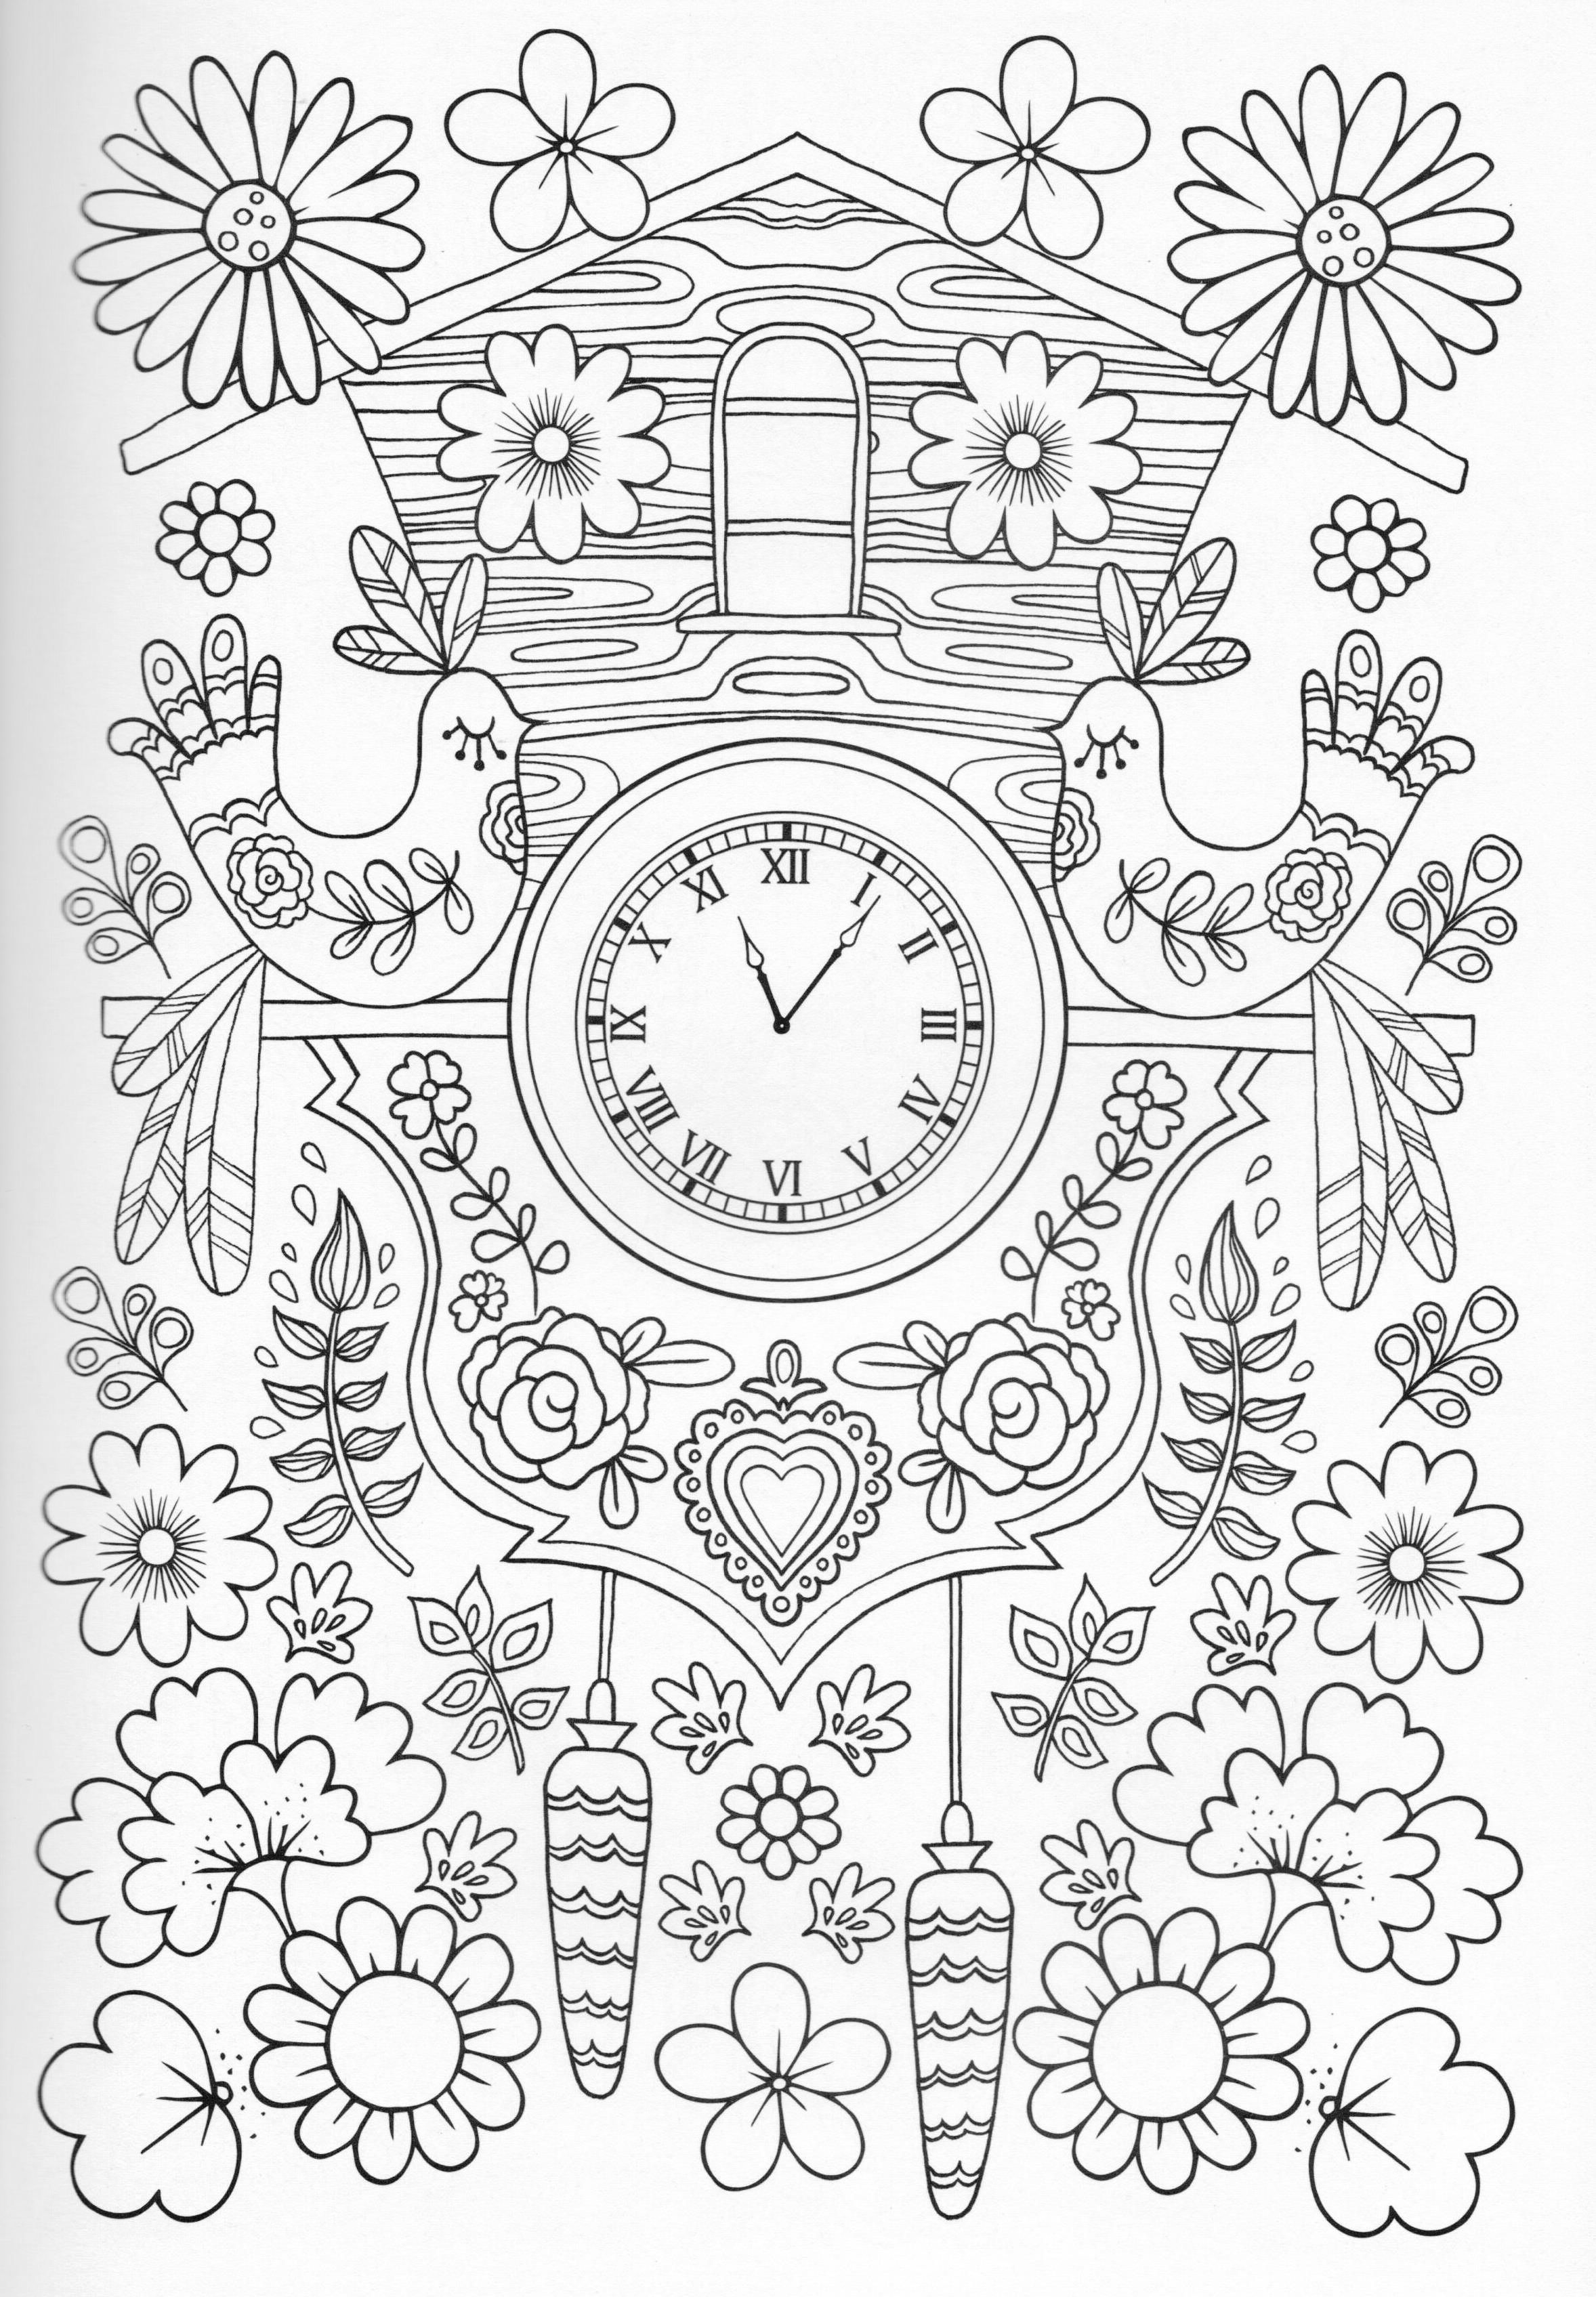 Adult Coloring Page Adult Coloring Book Pages Free Coloring